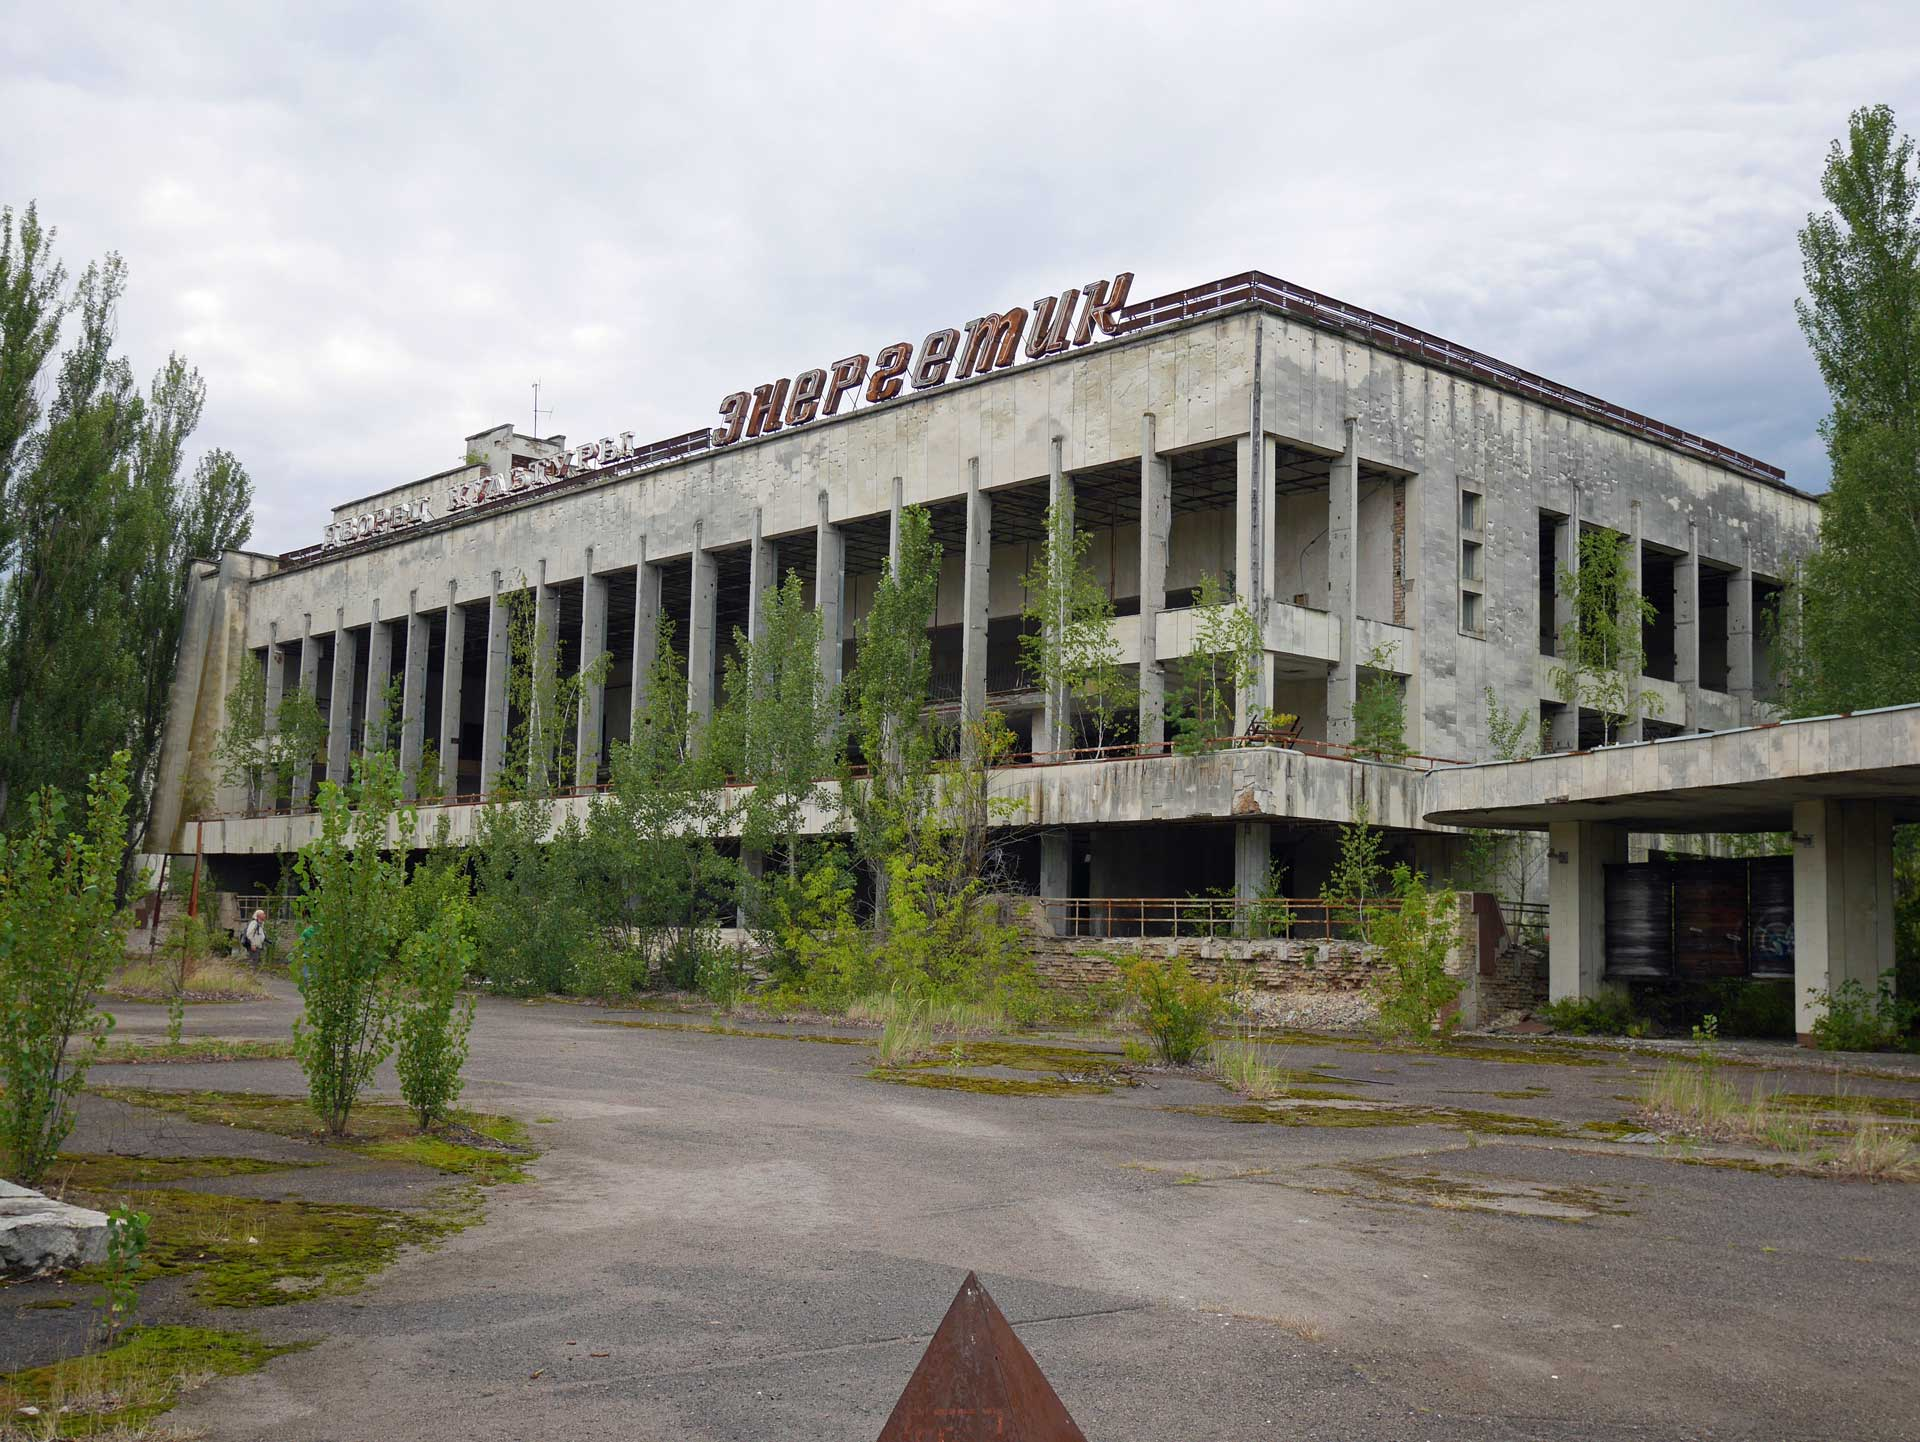 Palace-of-Culture-Pripyat-Energetic-2